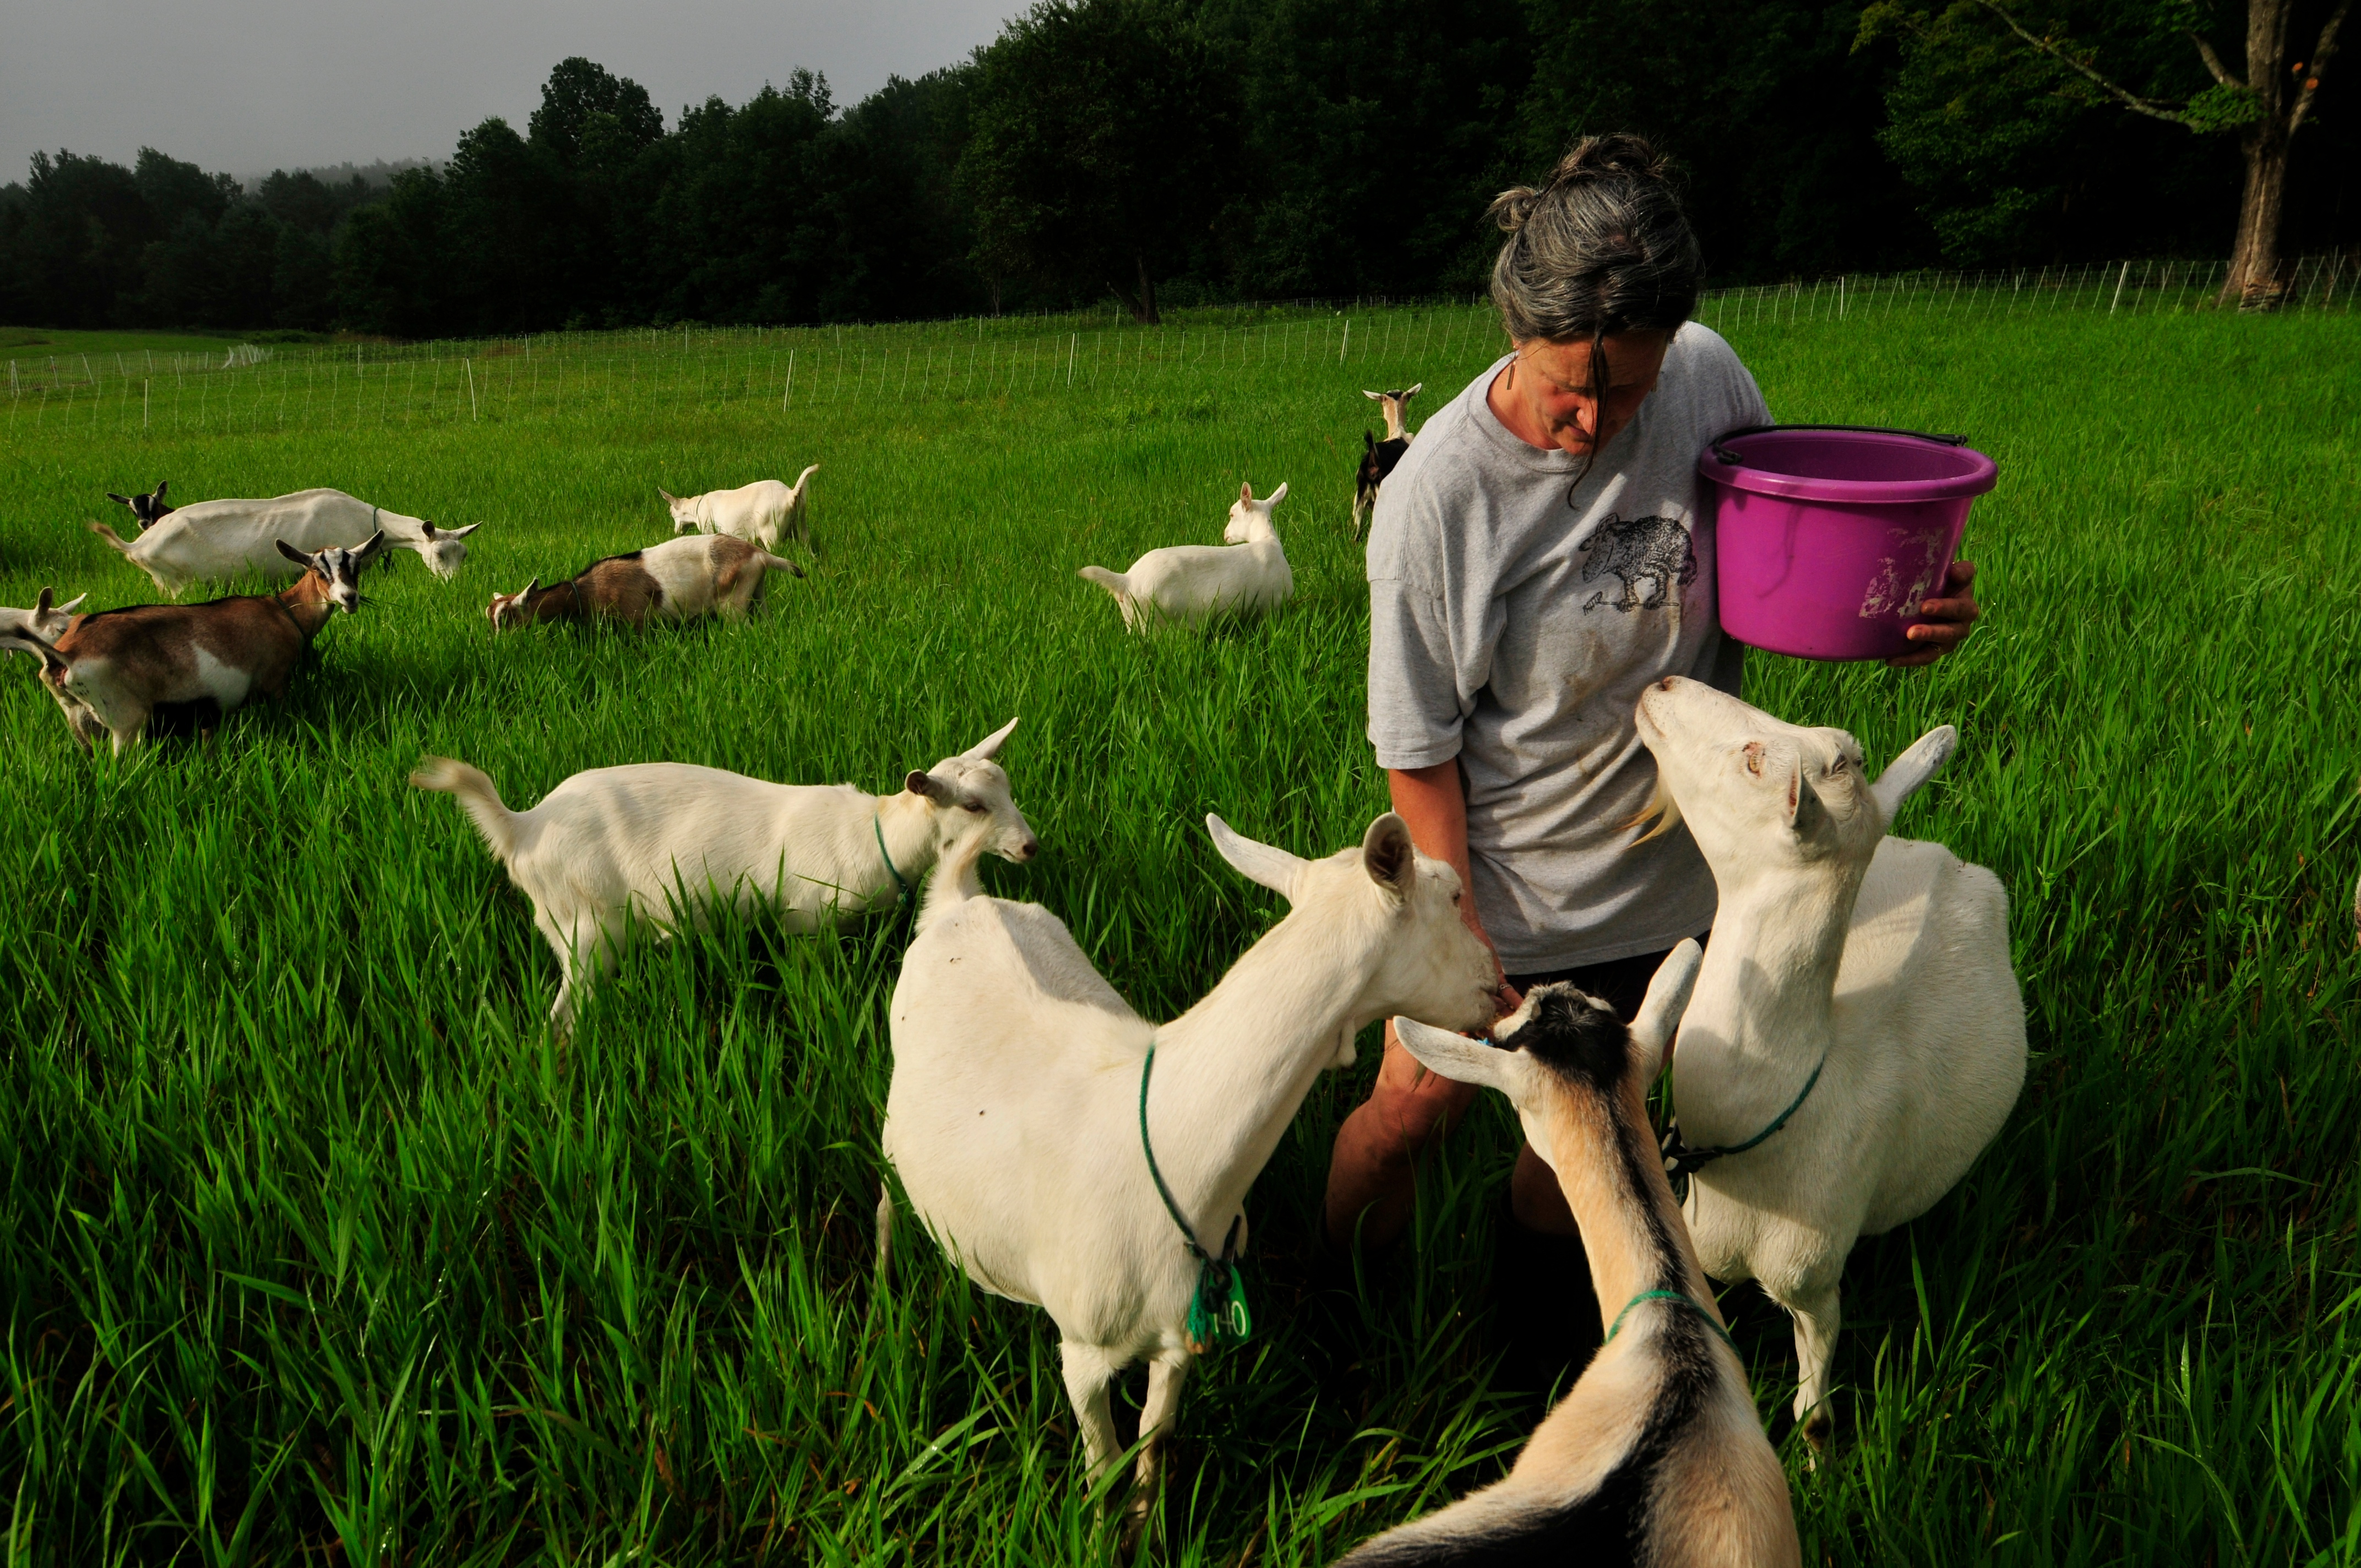 judith-feeding-goats-in-pasture.jpg